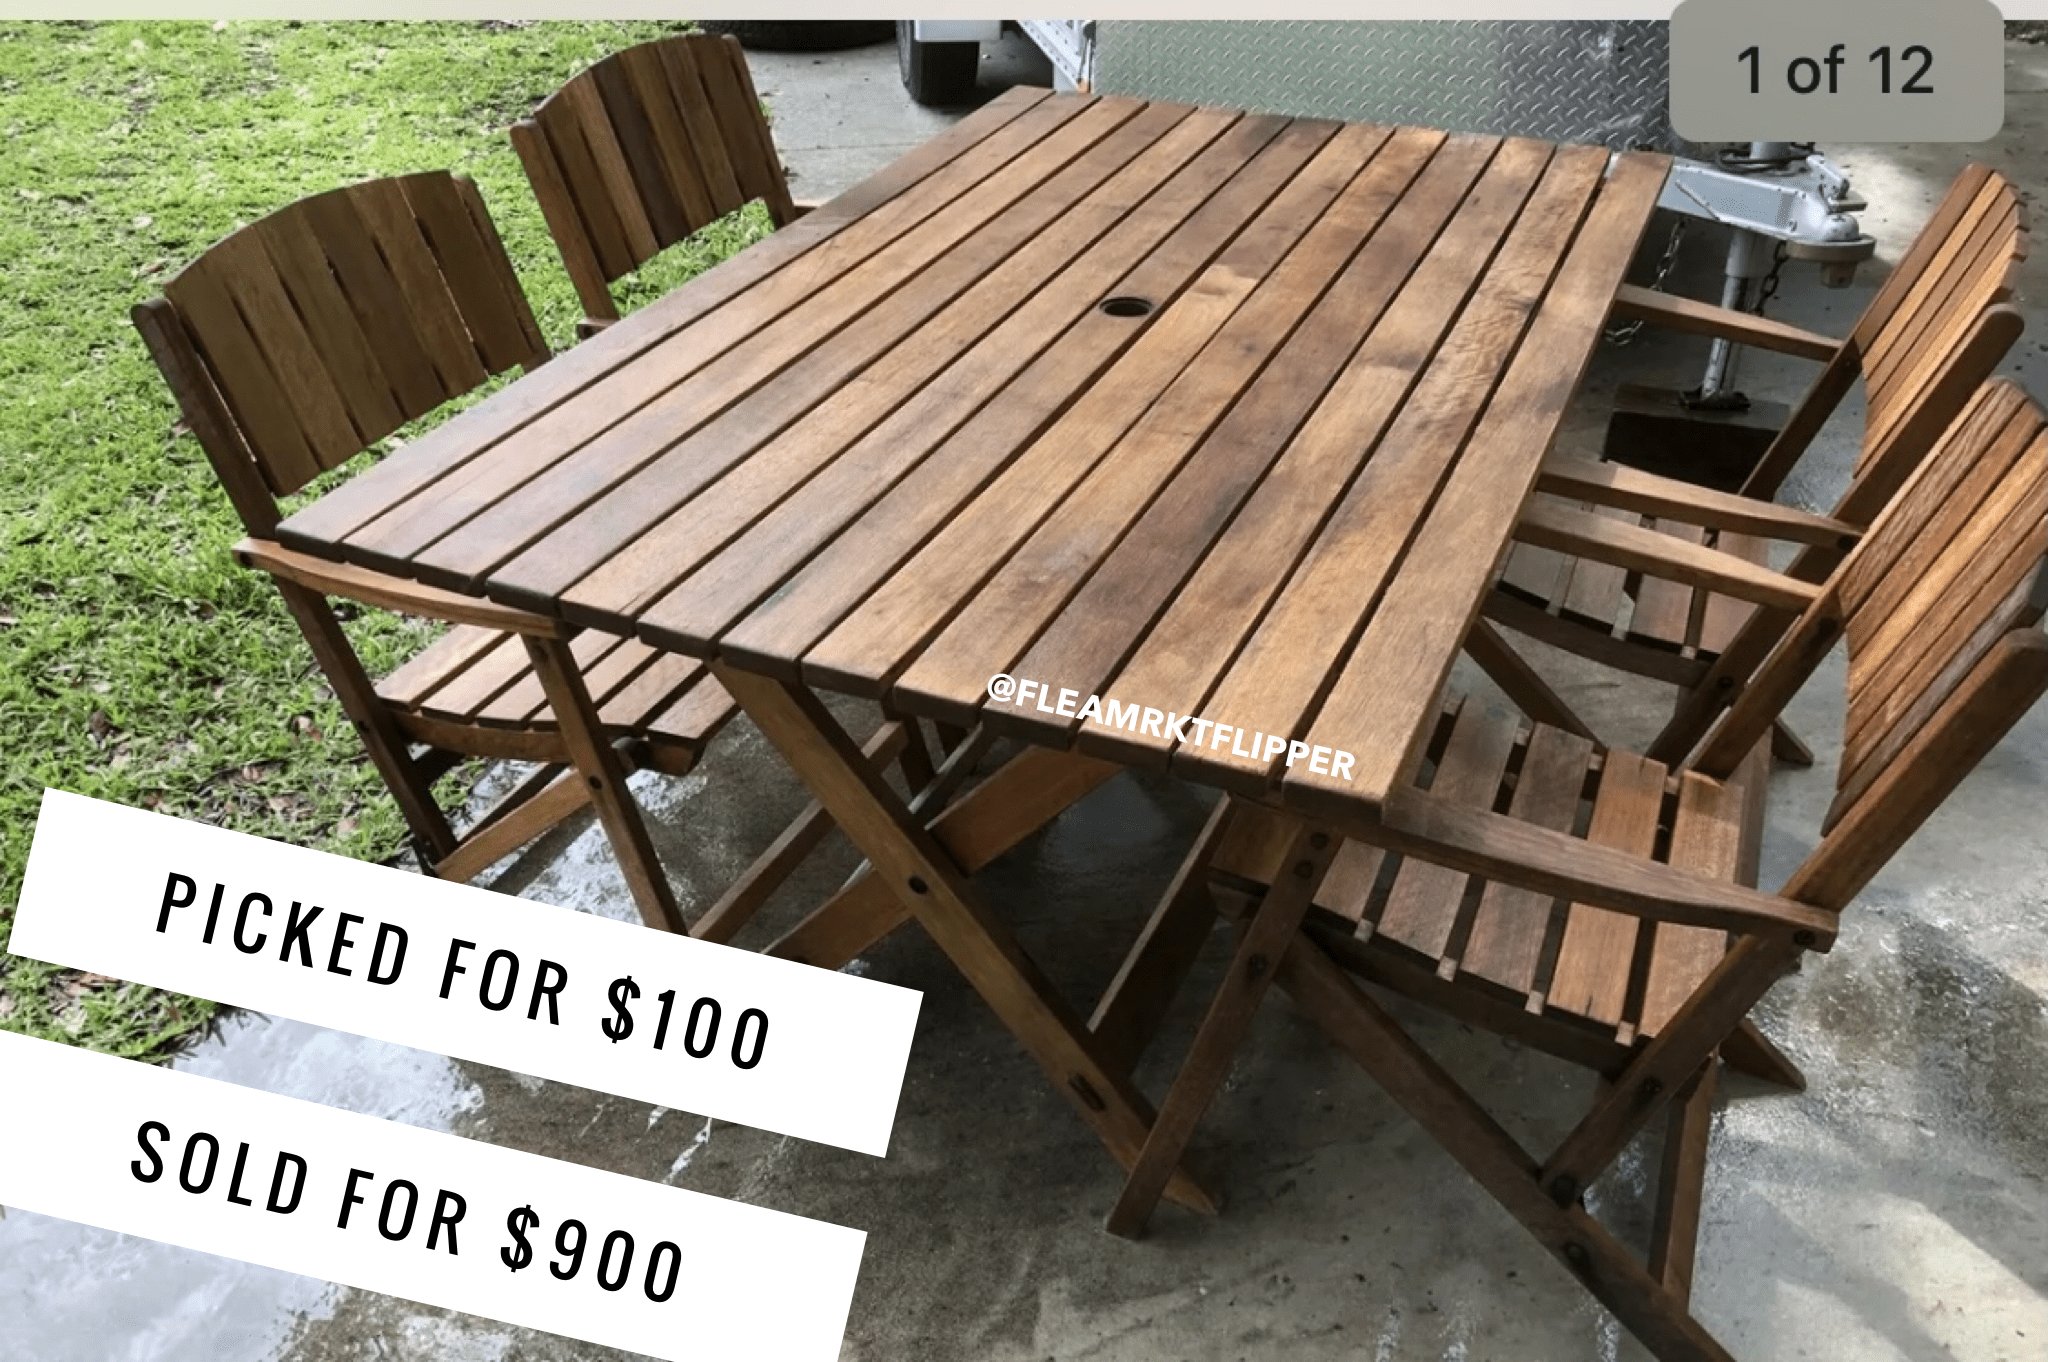 reselling used items